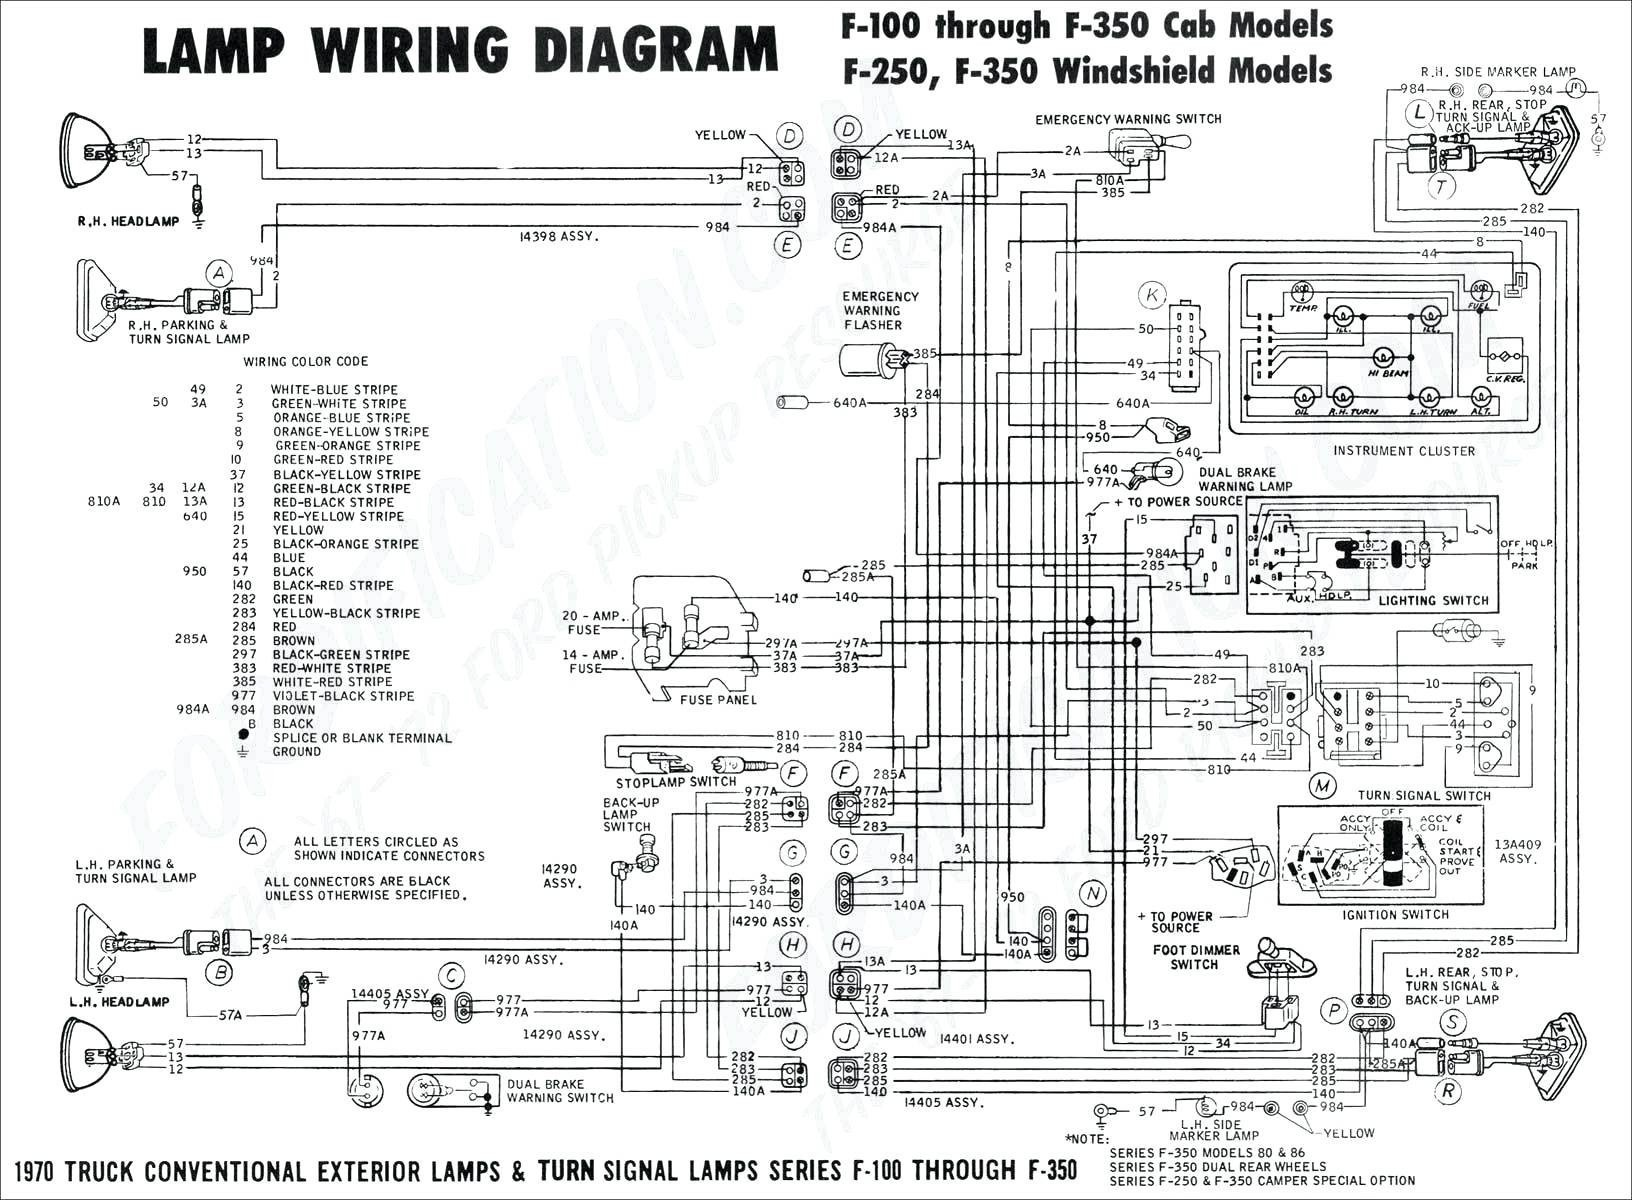 Lighting Contactor Wiring Diagram Photocell Eaton atc 800 Wiring Diagram Contactor Wiring Diagram A1 A2 Of Lighting Contactor Wiring Diagram Photocell